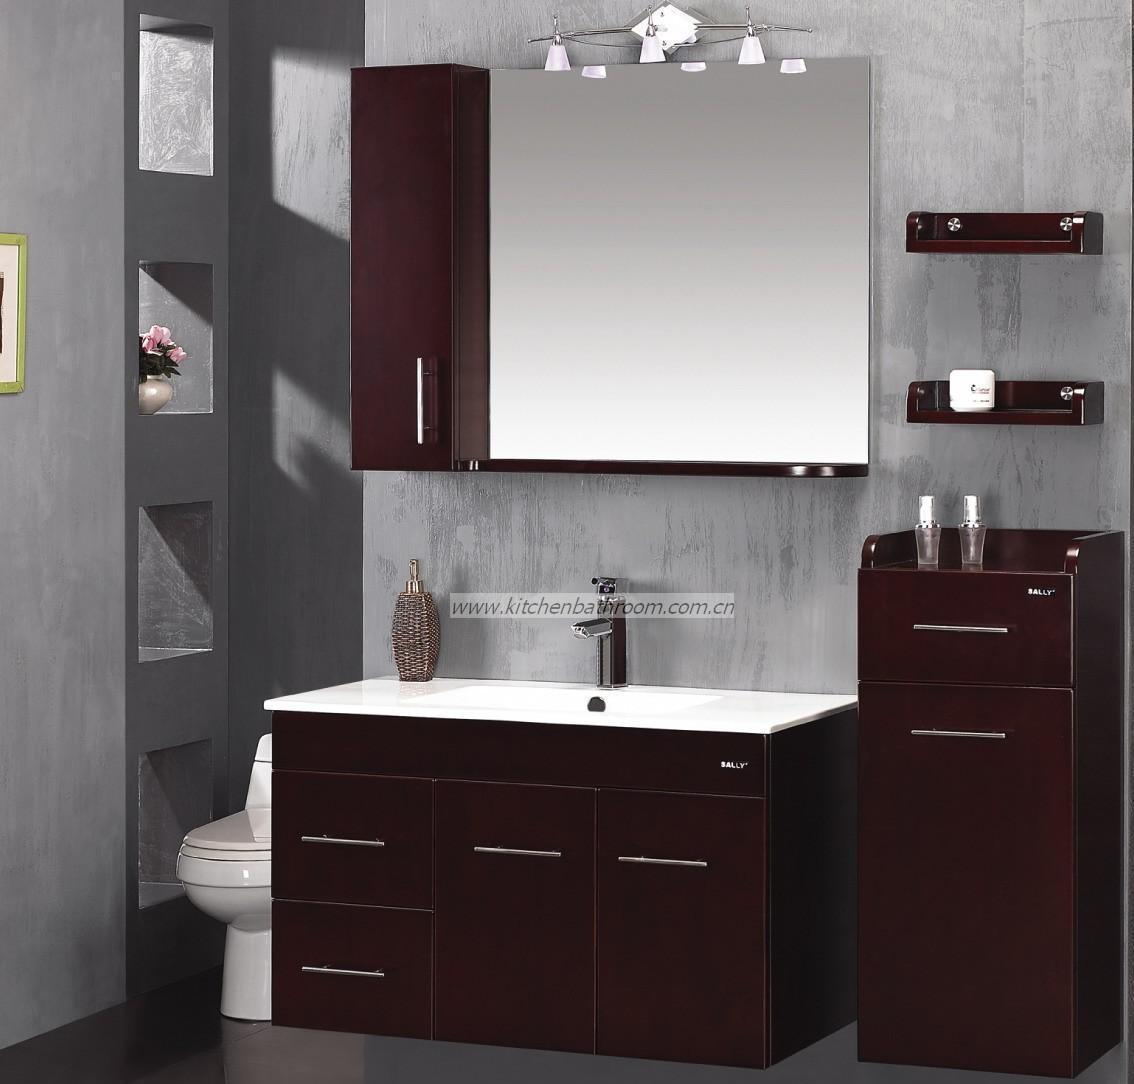 China bathroom cabinets yxbc 2022 china bathroom for Bathroom furniture design ideas